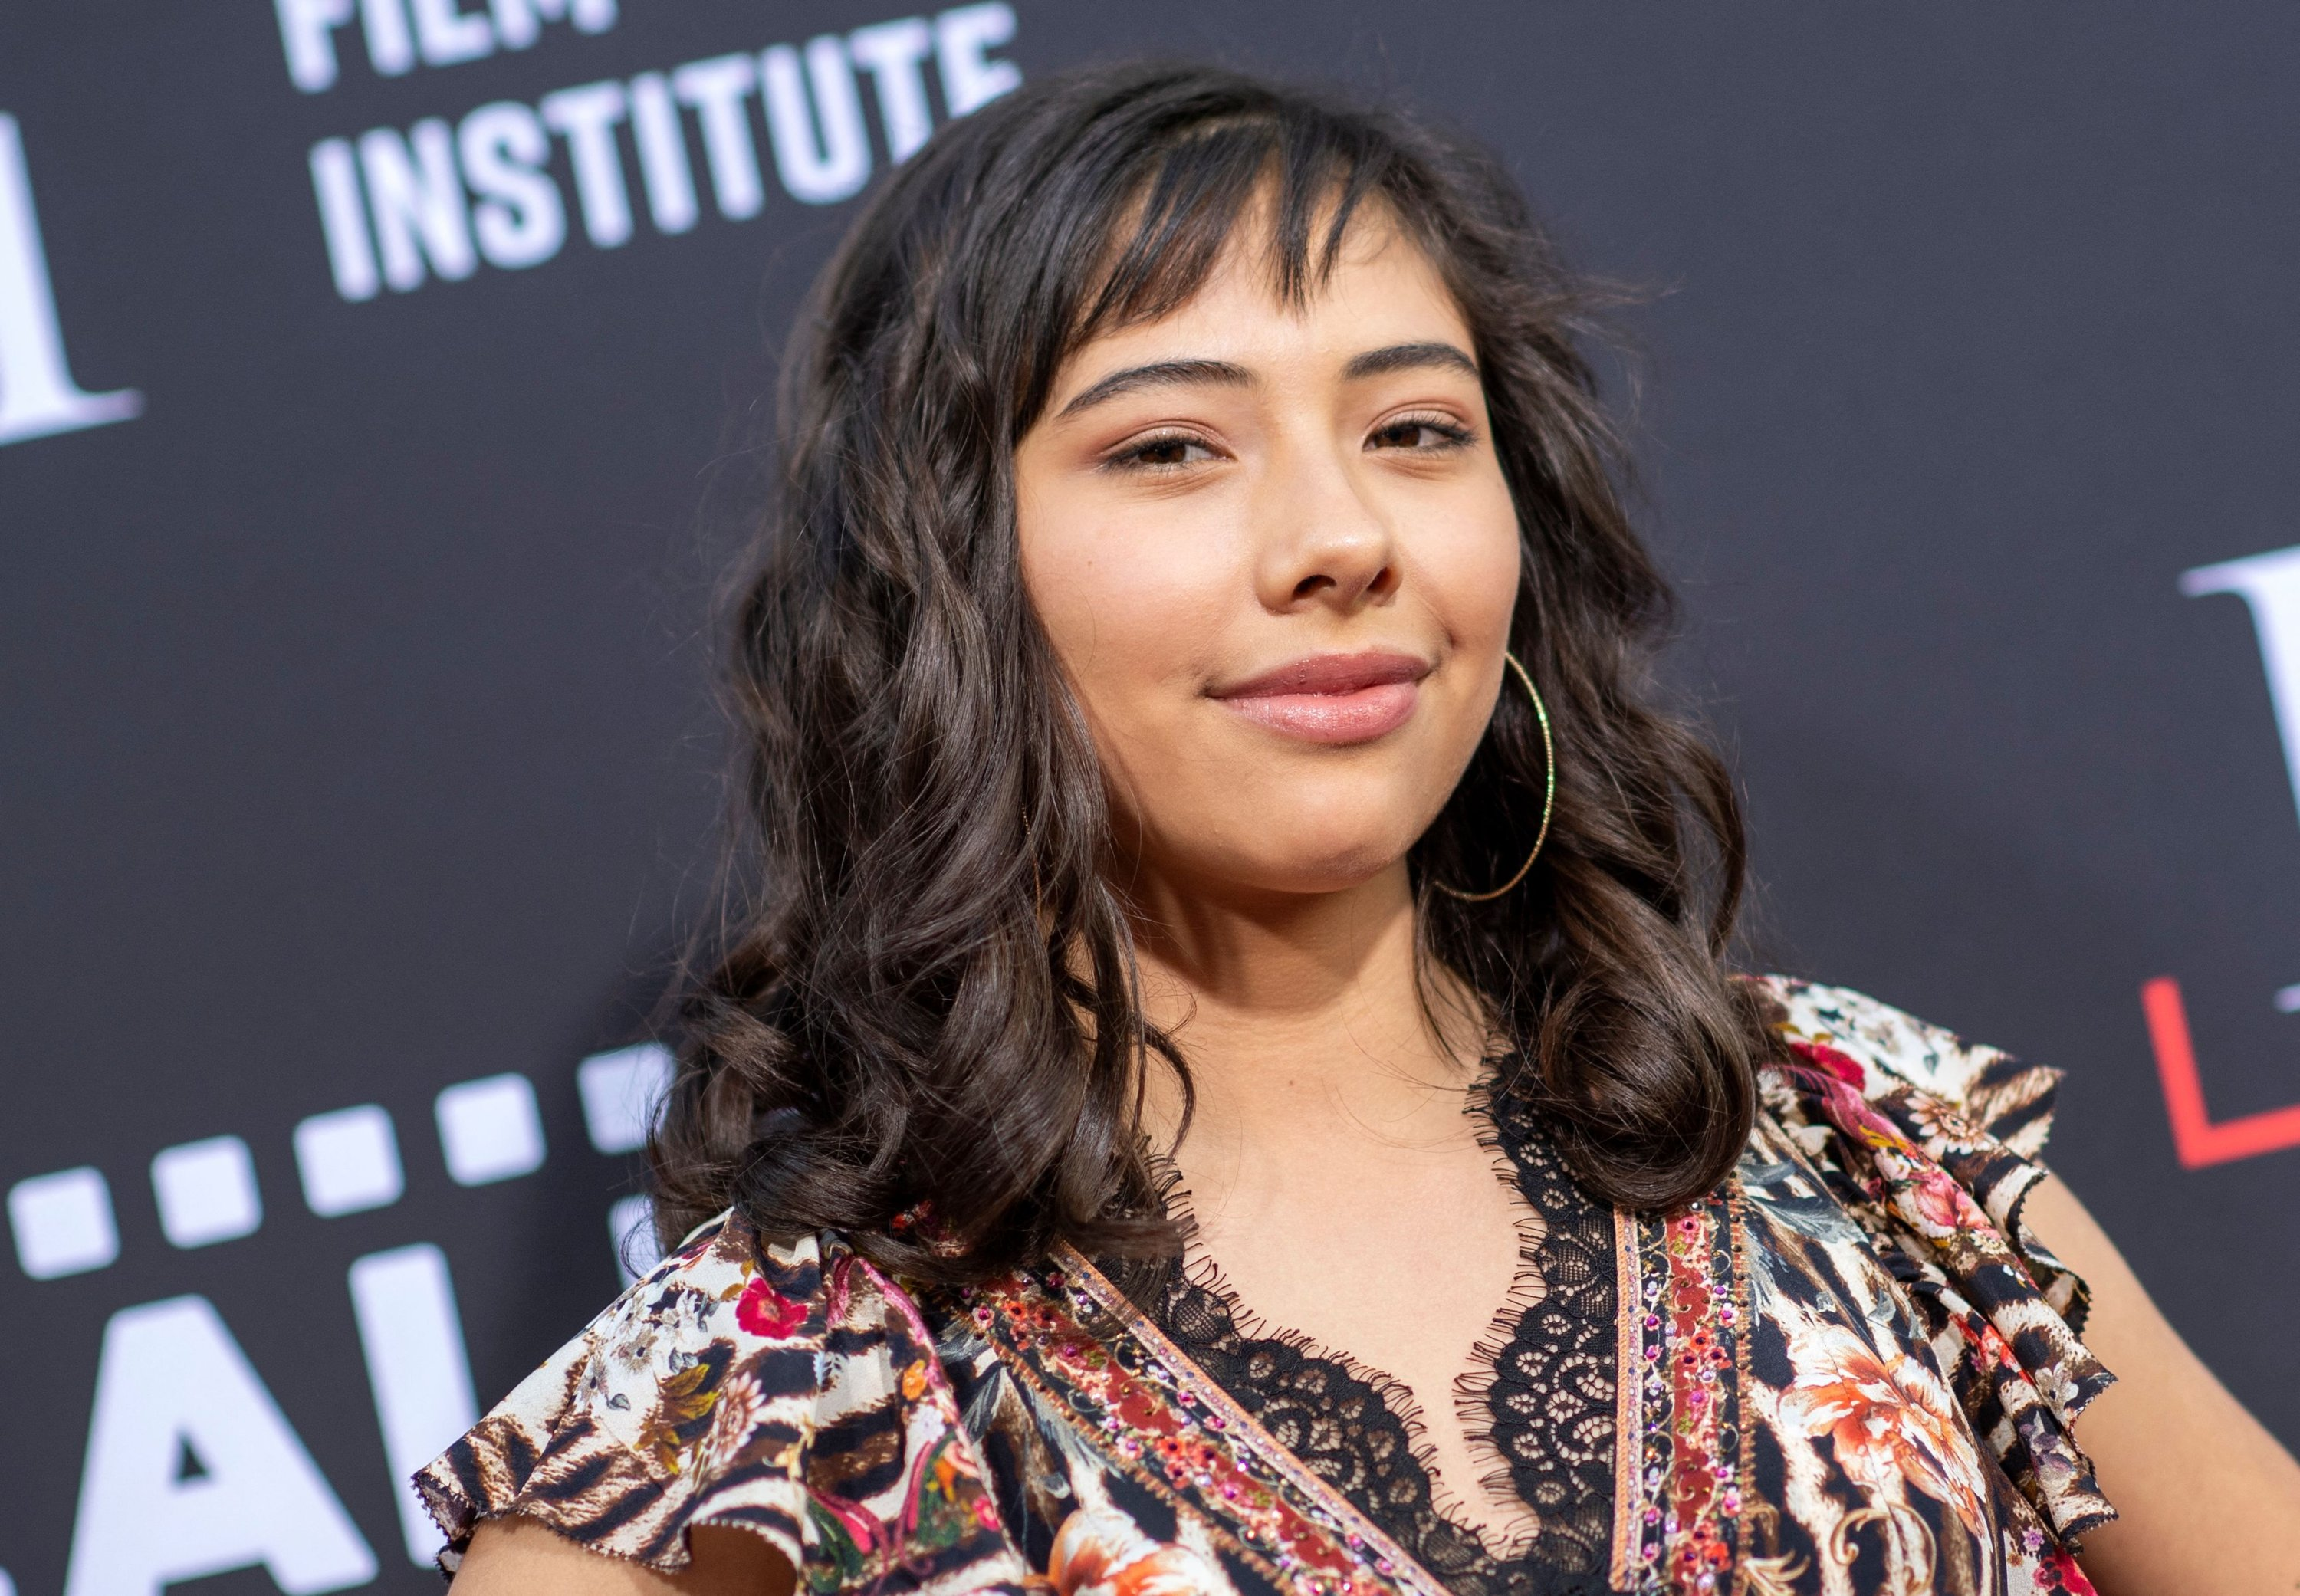 Actress Xochitl Gomez attendsthe Los Angeles Latino International Film Festival (LALIFF) special preview screening of 'In The Heights' at the TCL Chinese Theater in Hollywood, California, U.S., June 4, 2021. (AFP Photo)